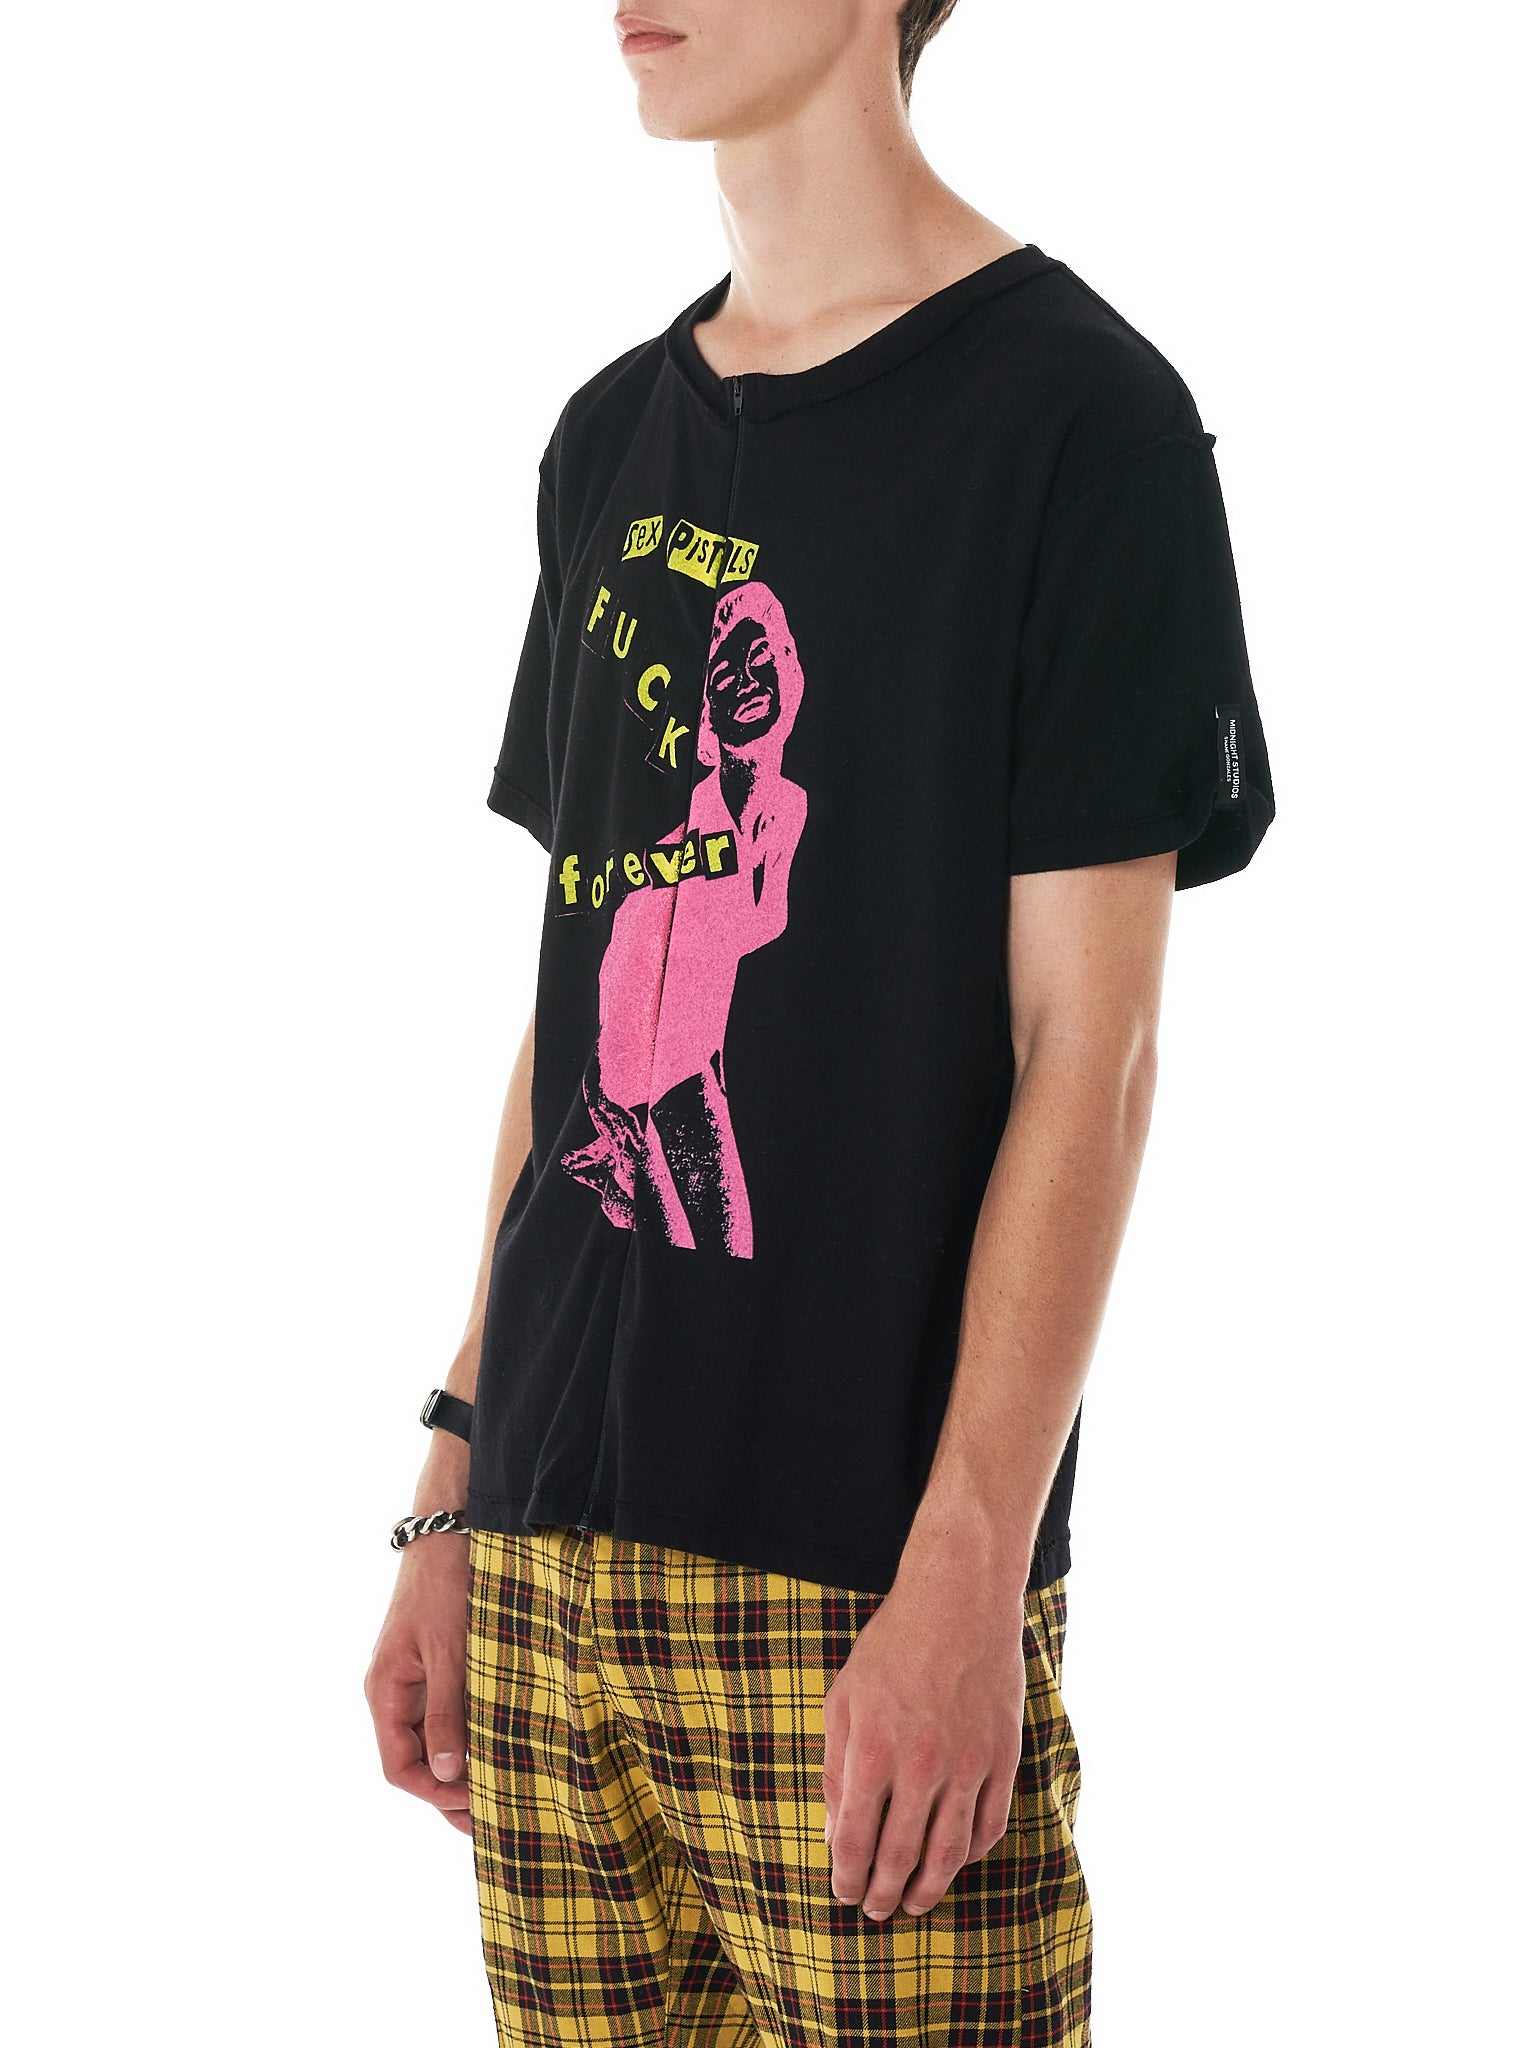 Midnight Studios x Sex Pistols Tee Shirt - Hlorenzo Side